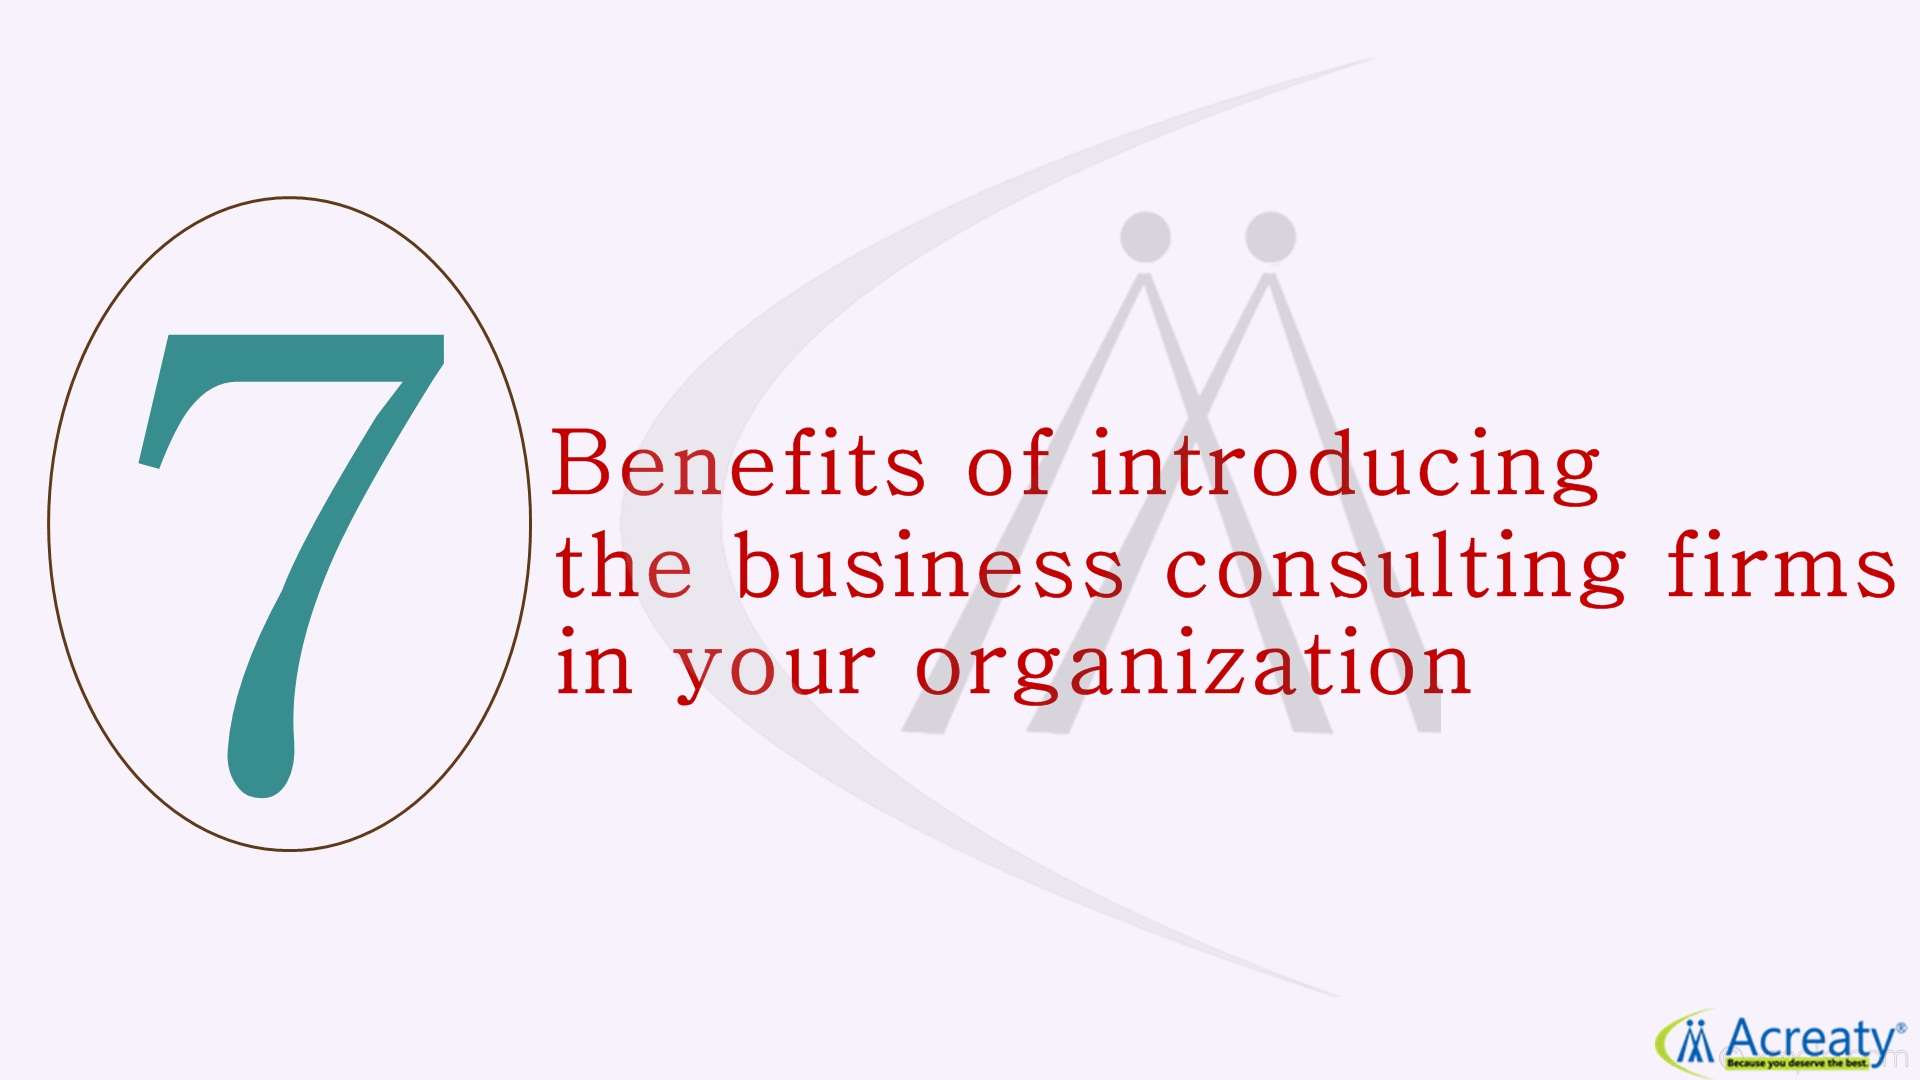 7 Benefits of introducing the business consulting firms in your organization.